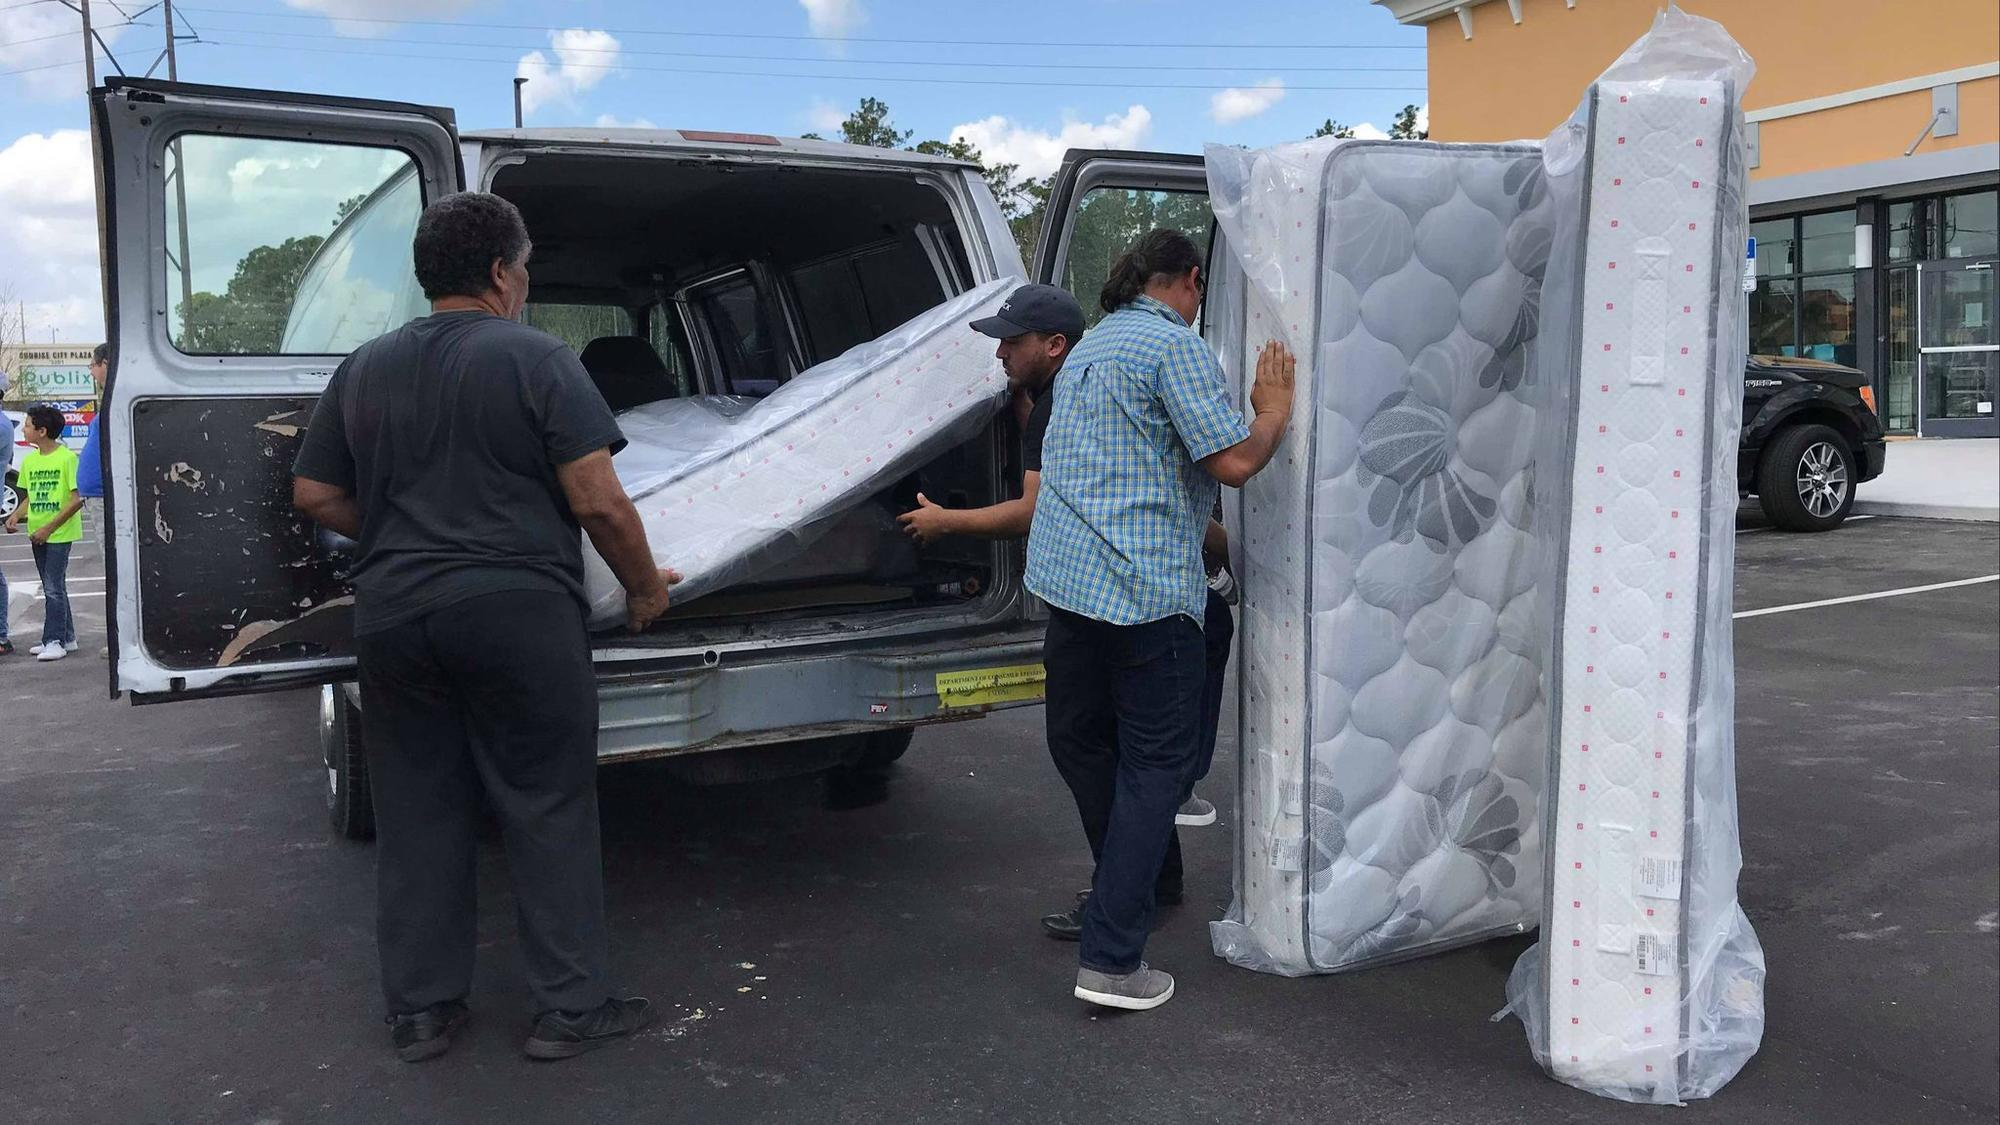 Puerto Rico Based Company Gives Away Mattresses To Displaced Families In The Region Orlando Sentinel